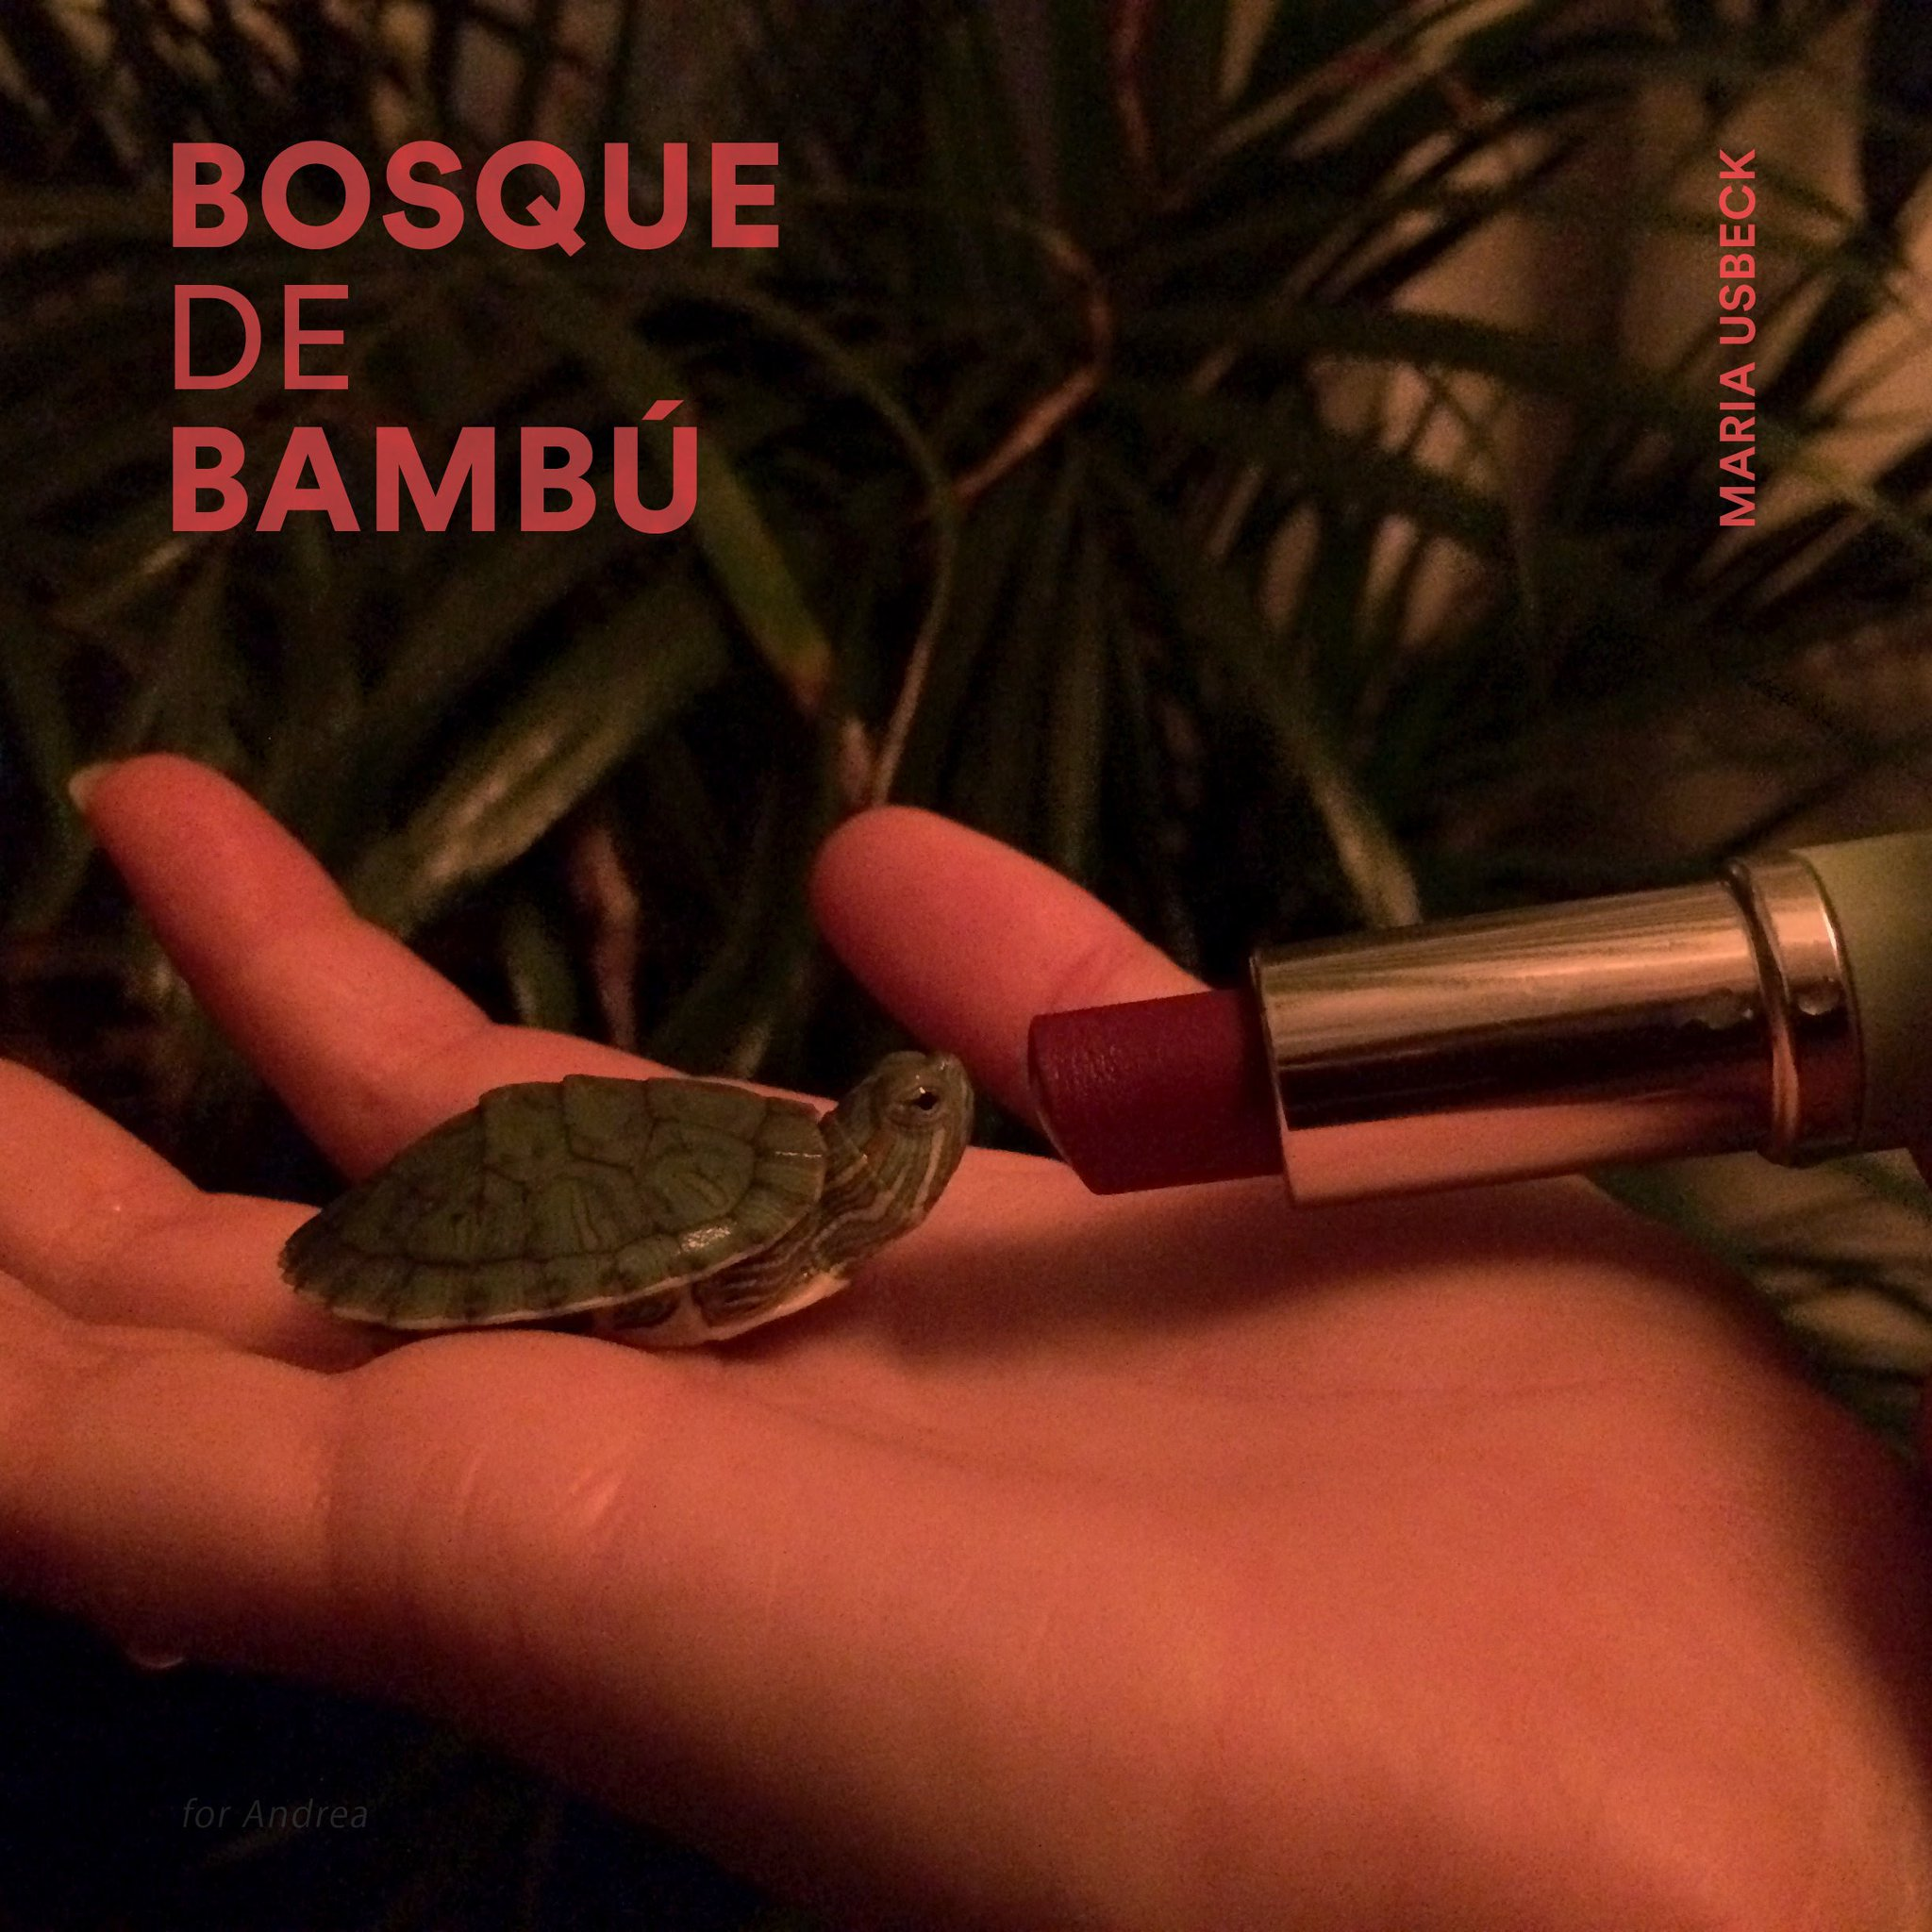 Listen to 'Bosque De Bambú,' a new stunner from @mariausbeck https://t.co/h31rceCSM0 https://t.co/WXGjx5Ic3f